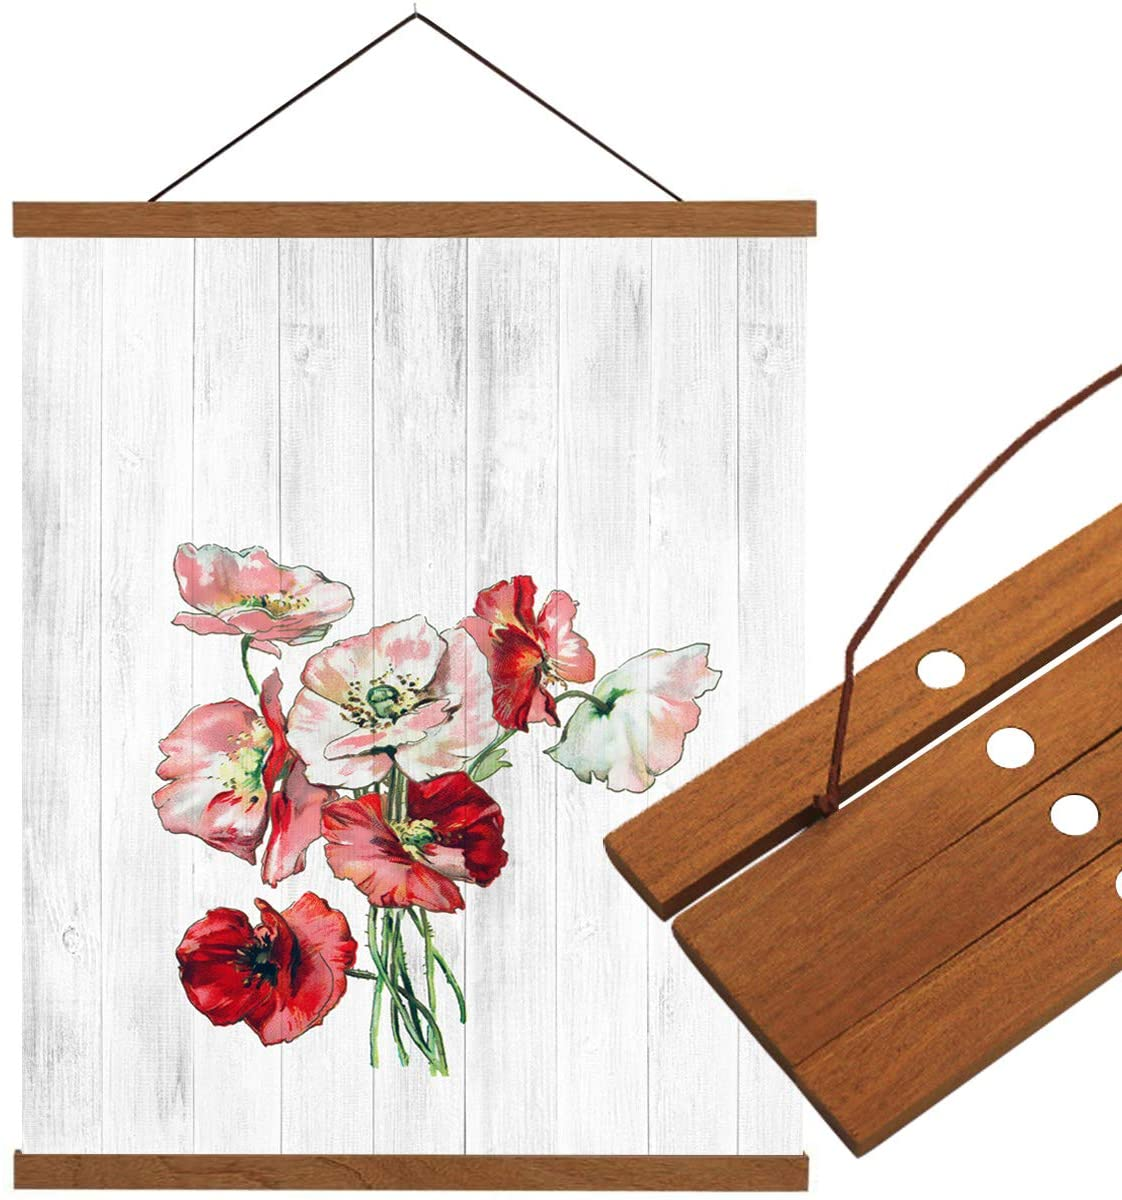 Edwiinsa Magnetic Wood Stick Canvas Poster Hanger, Watercolor Poppy Flowers on Wooden Plank, Dowel Scroll Hanging Kit for Walls Canvas Artwork Print(Teak, 12